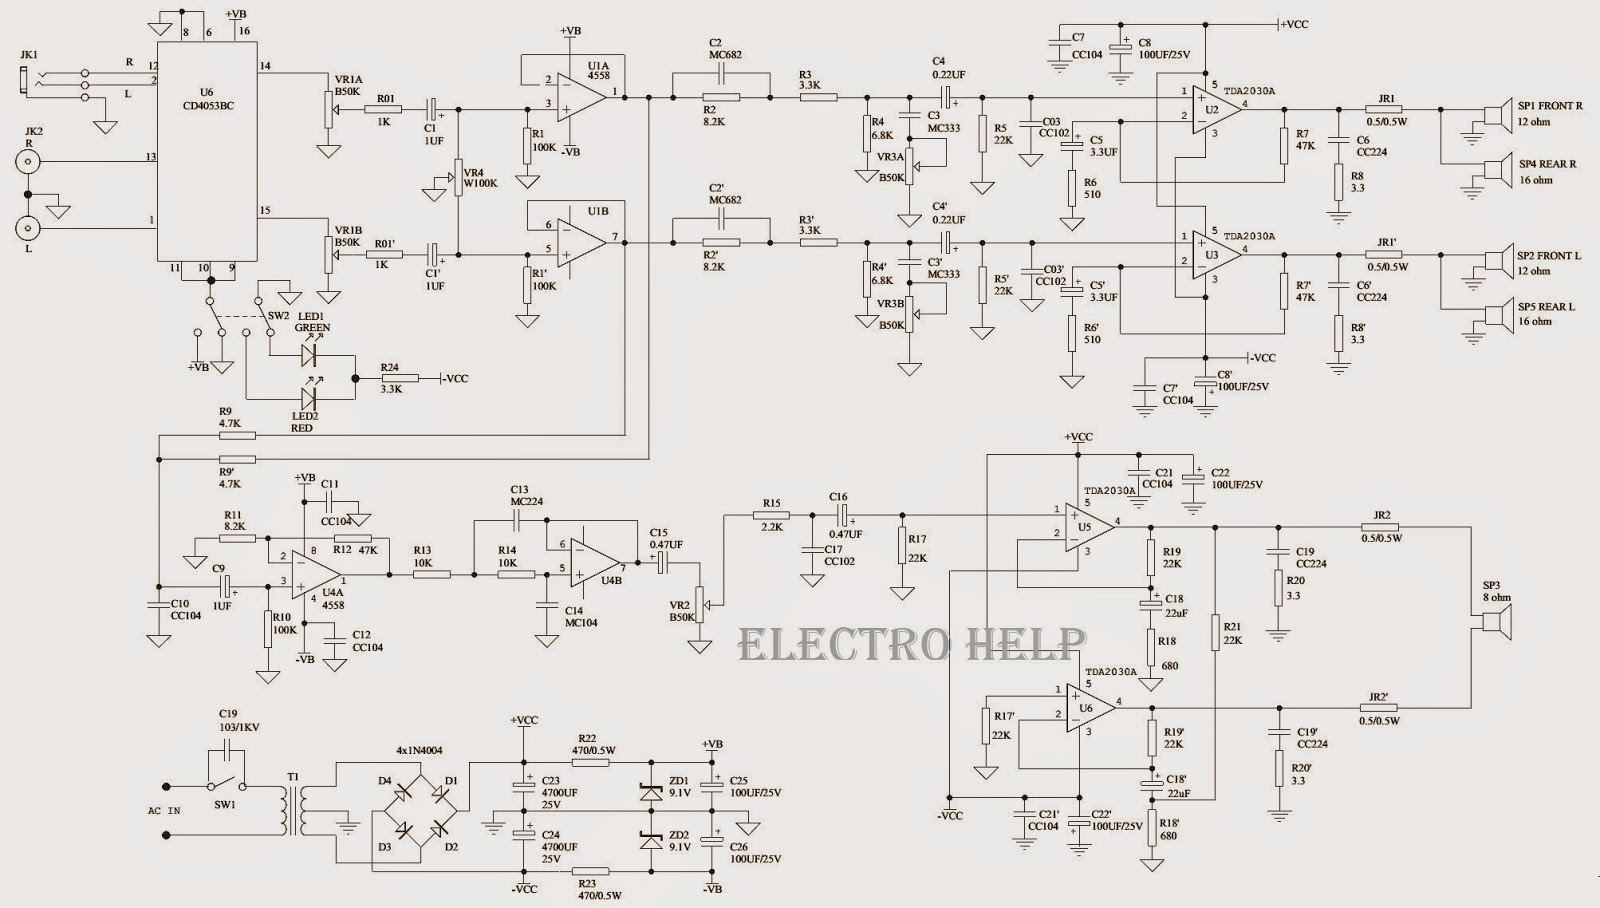 MC3500 altec lansing vs2521 micorlab x25d x27d h500d 600d microlab altec wiring diagram at edmiracle.co